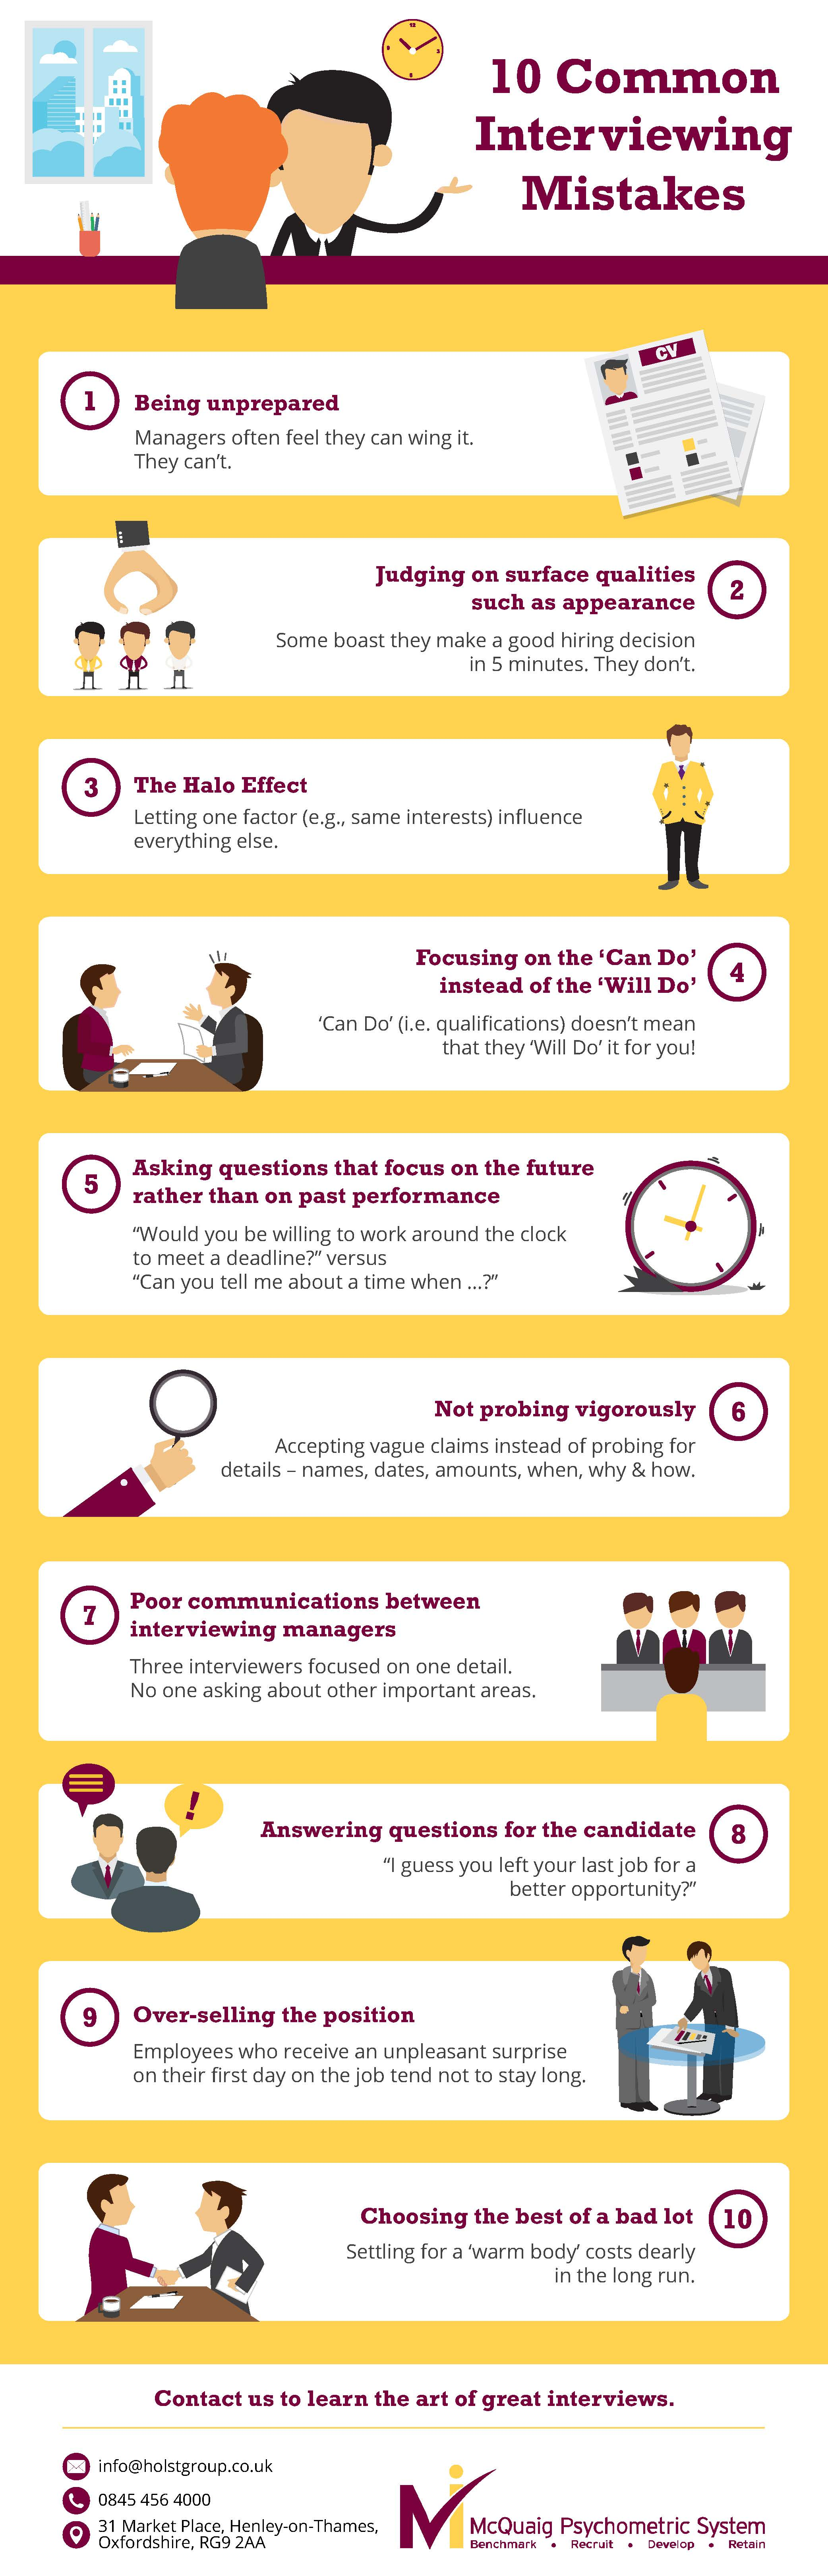 10 Common Interviewing Mistakes resized